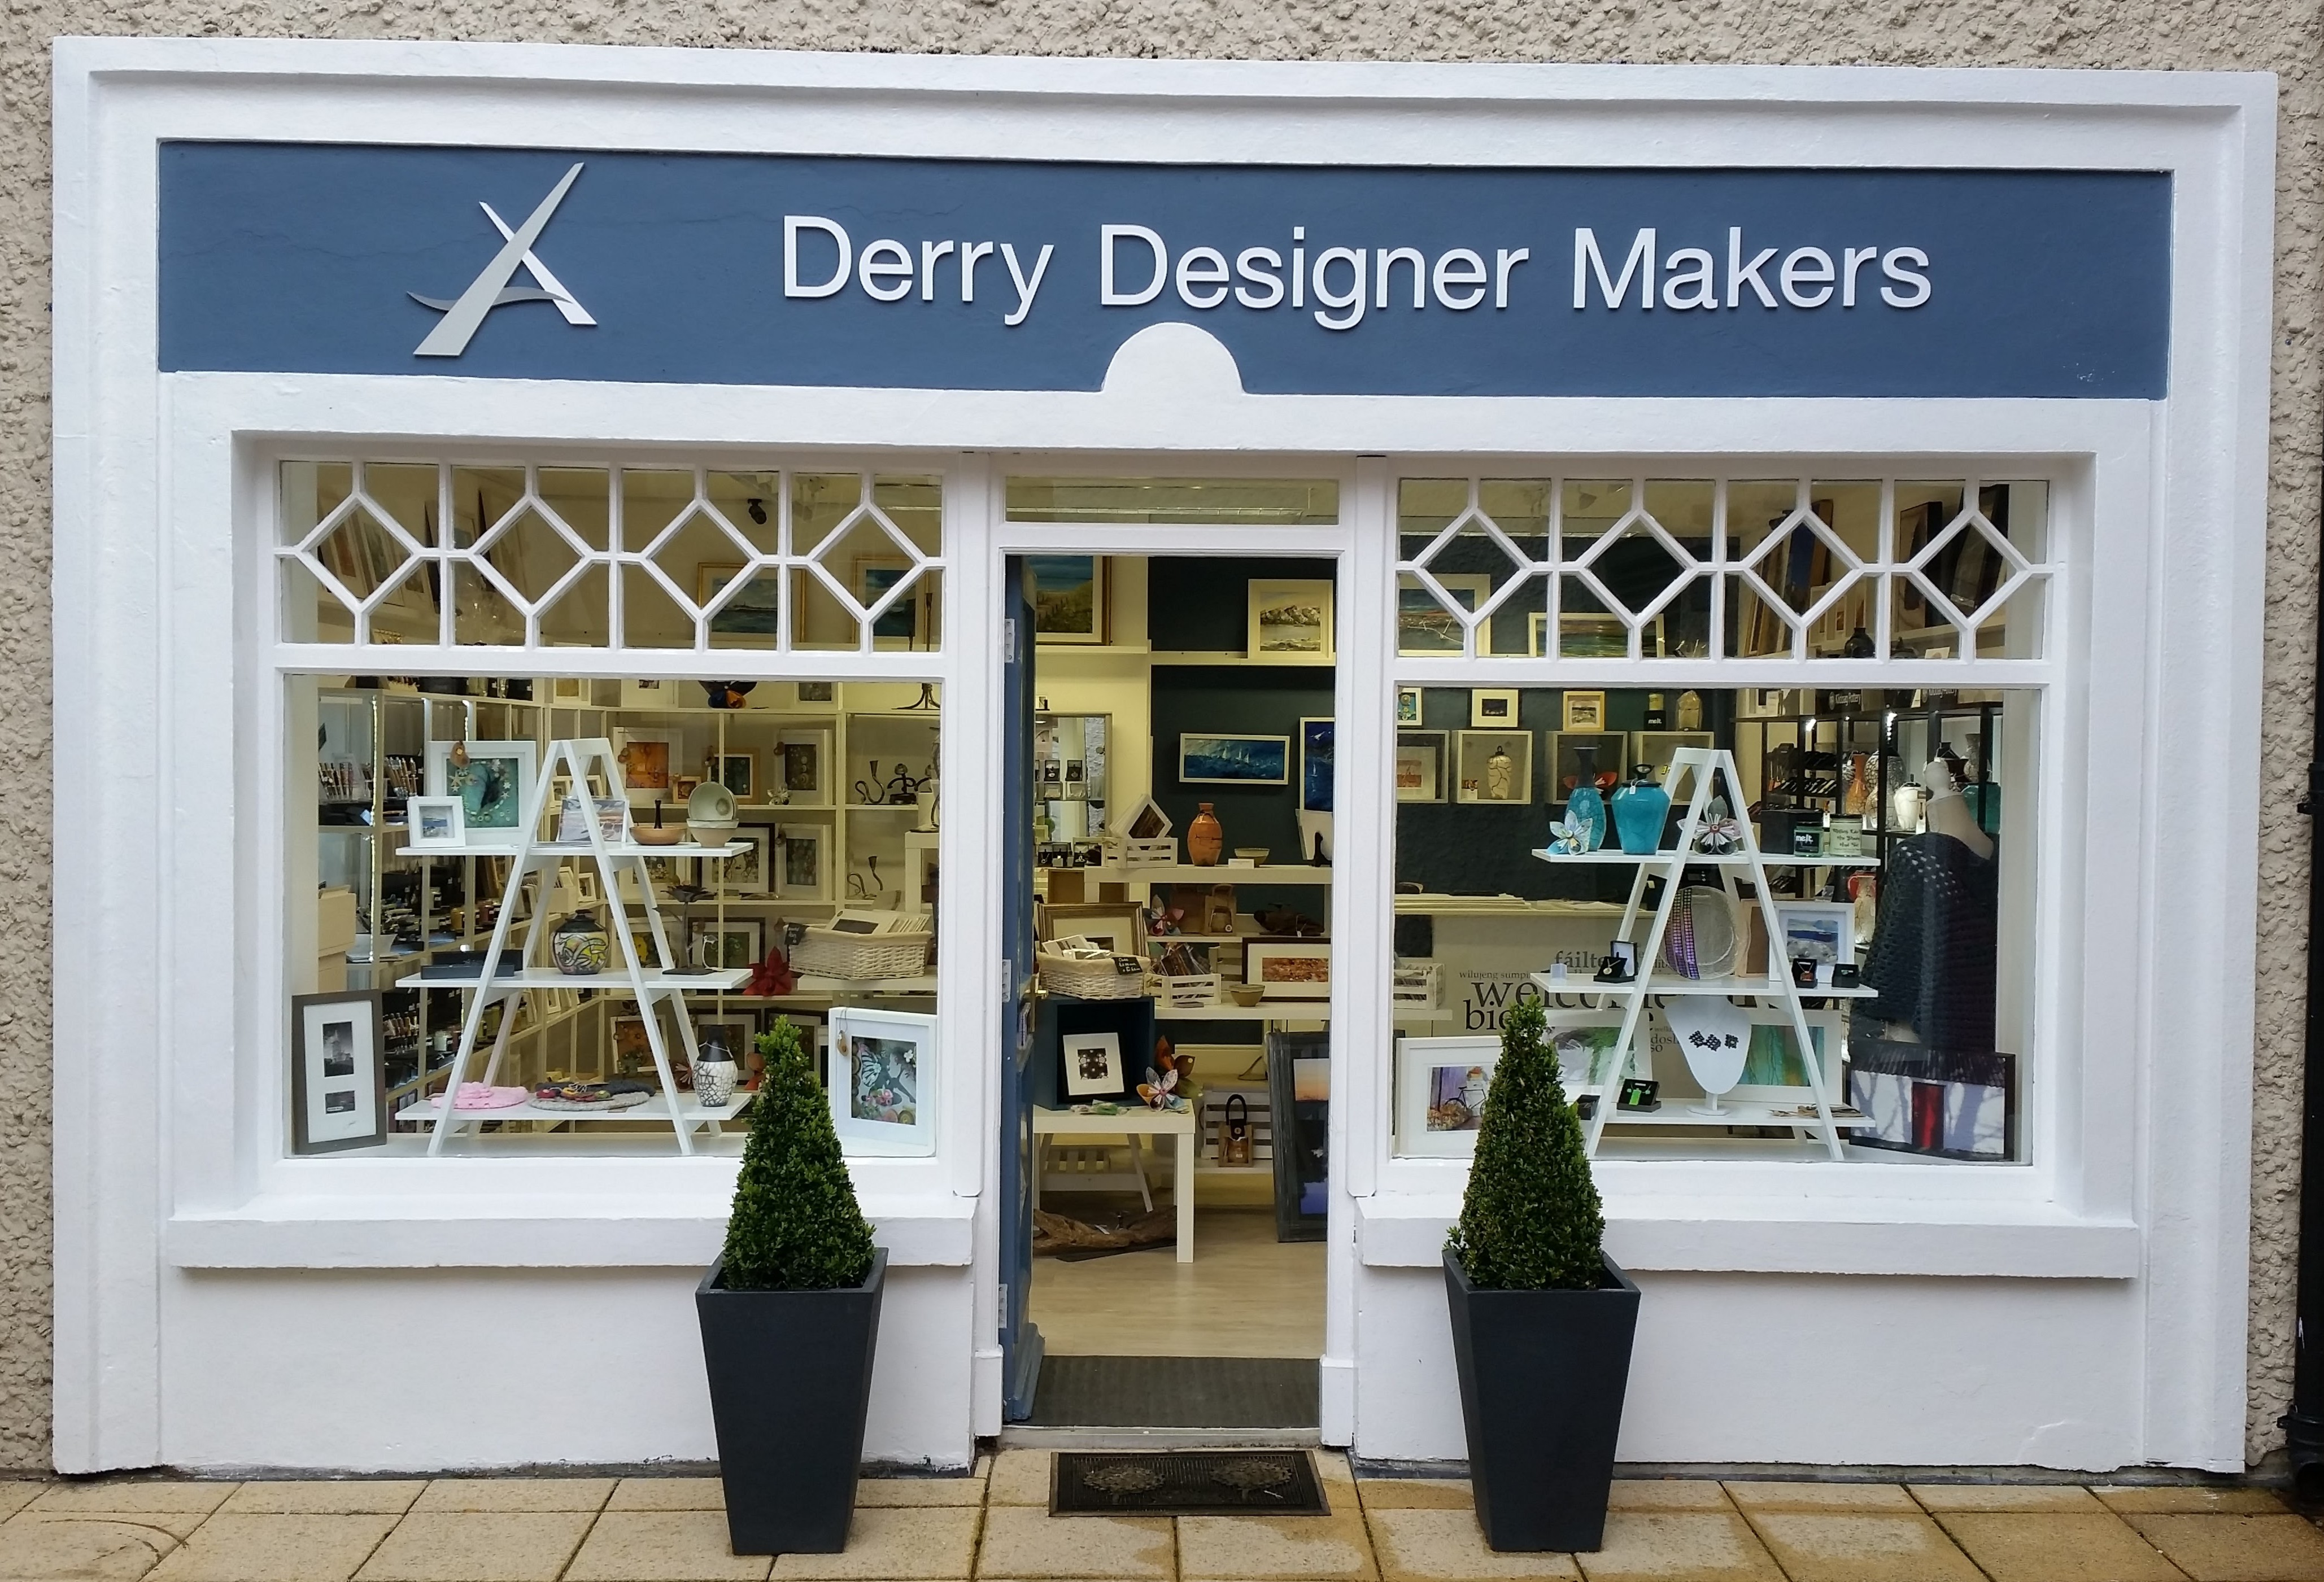 Derry Designer Makers